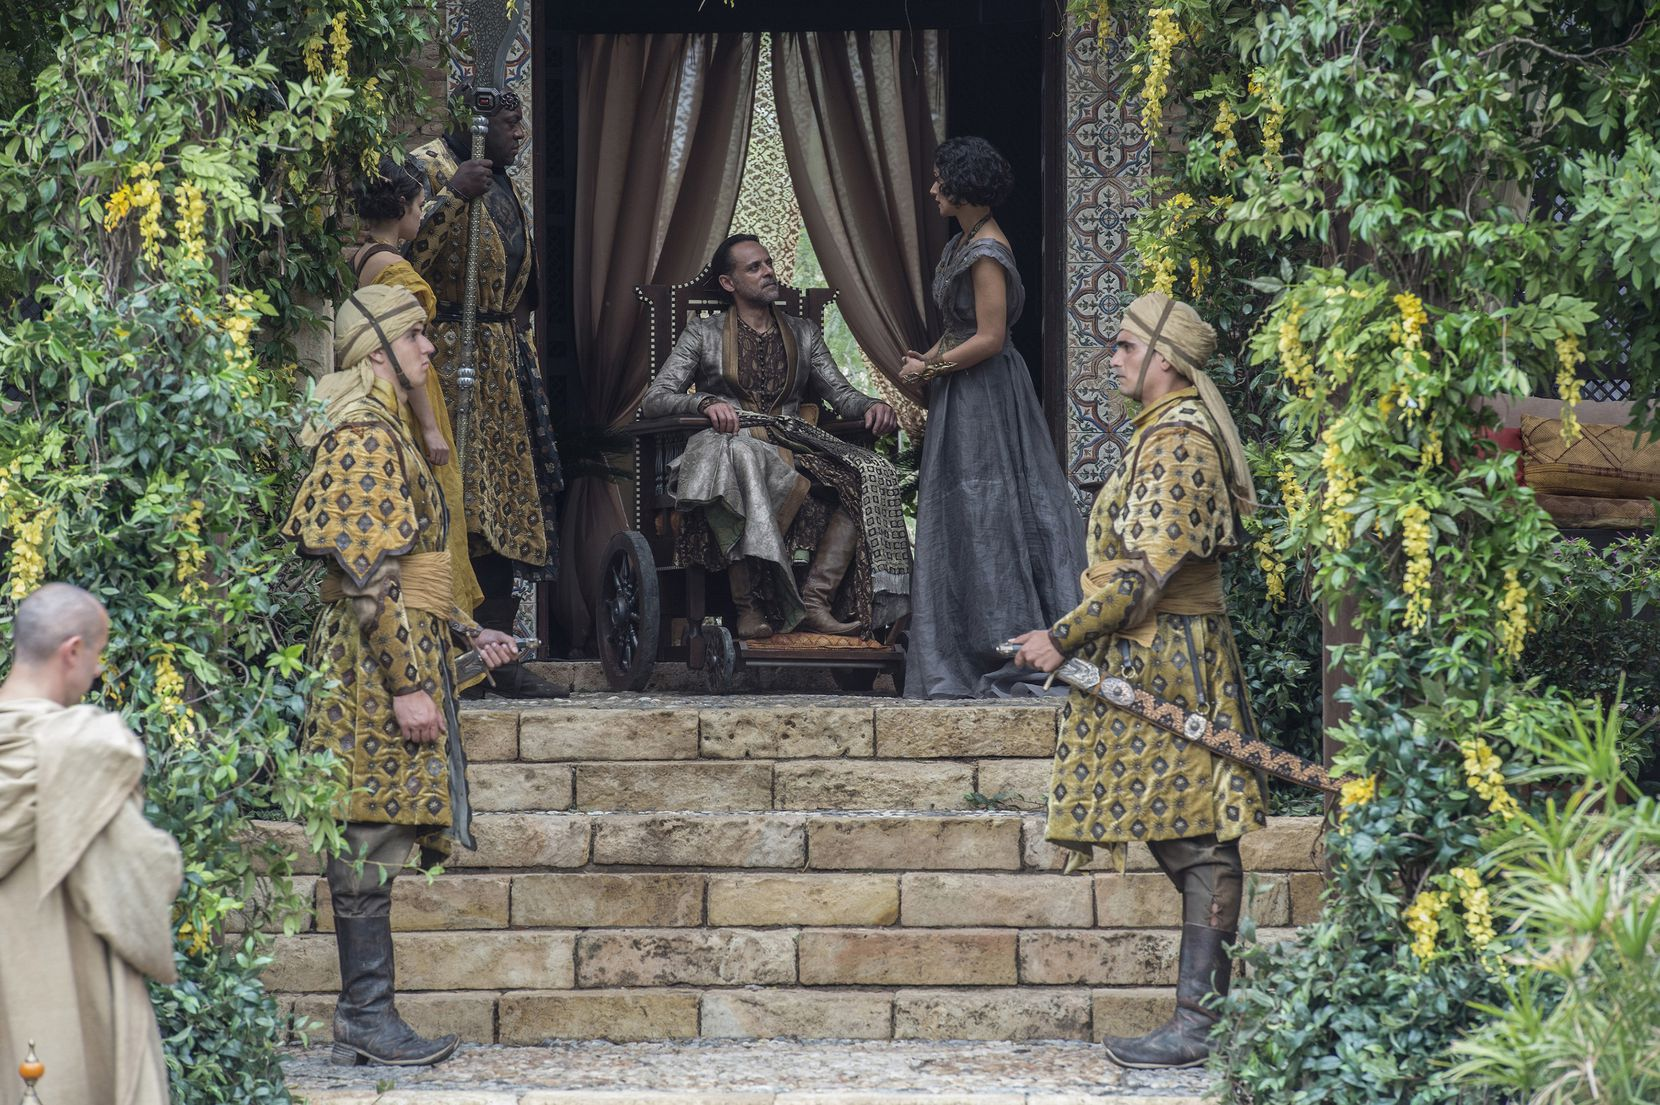 Dorne's plotline last season was a bit of a disappointment (by 'Game of Thrones' standards, at least). If the few minutes we spent there in this episode are an indicator, things are looking better.